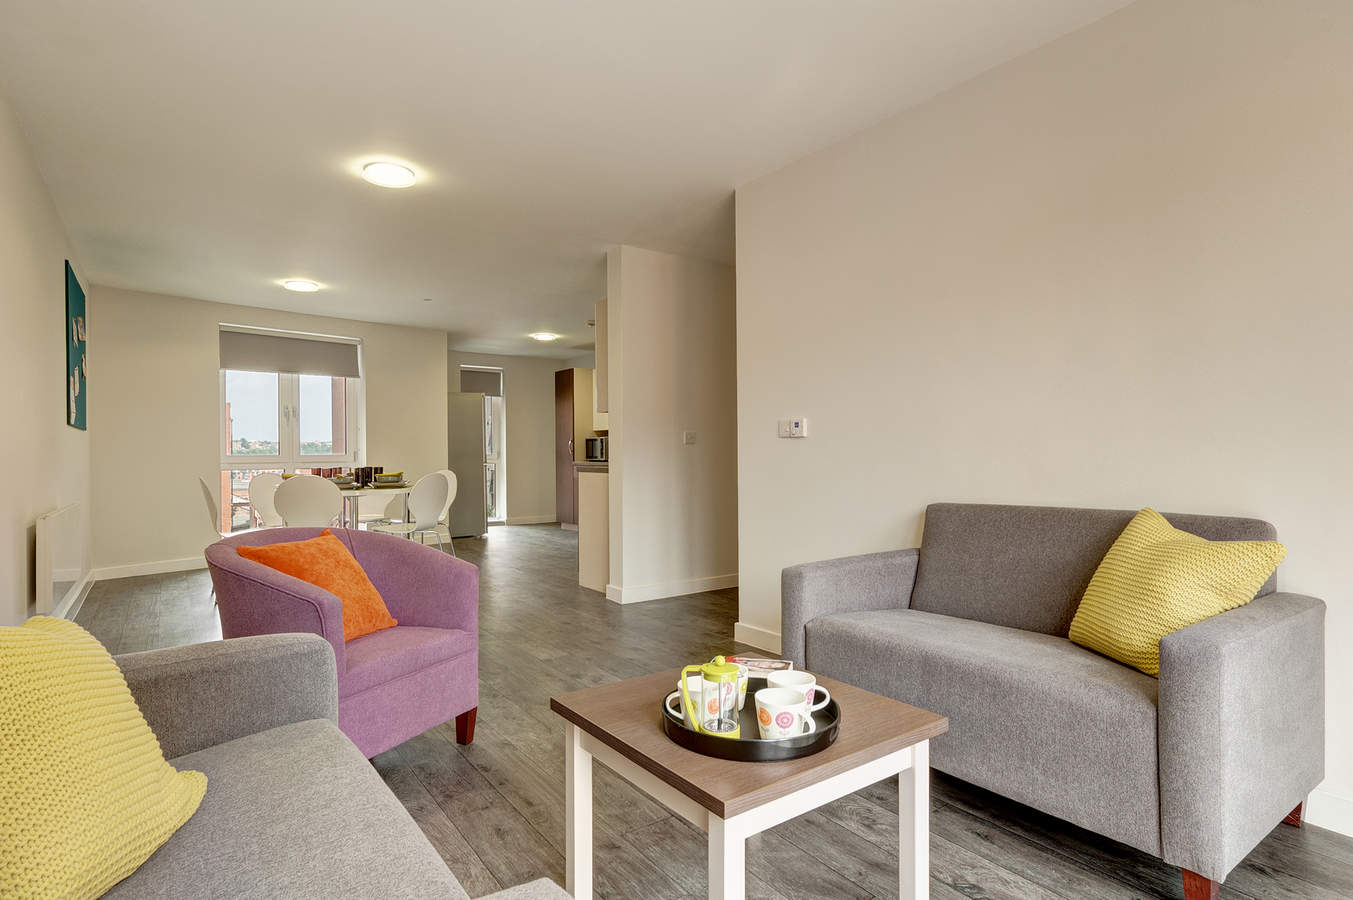 10-fresh-student-living-sheffield-cornerhouse-03-shared-flat-living-area-photo-_web